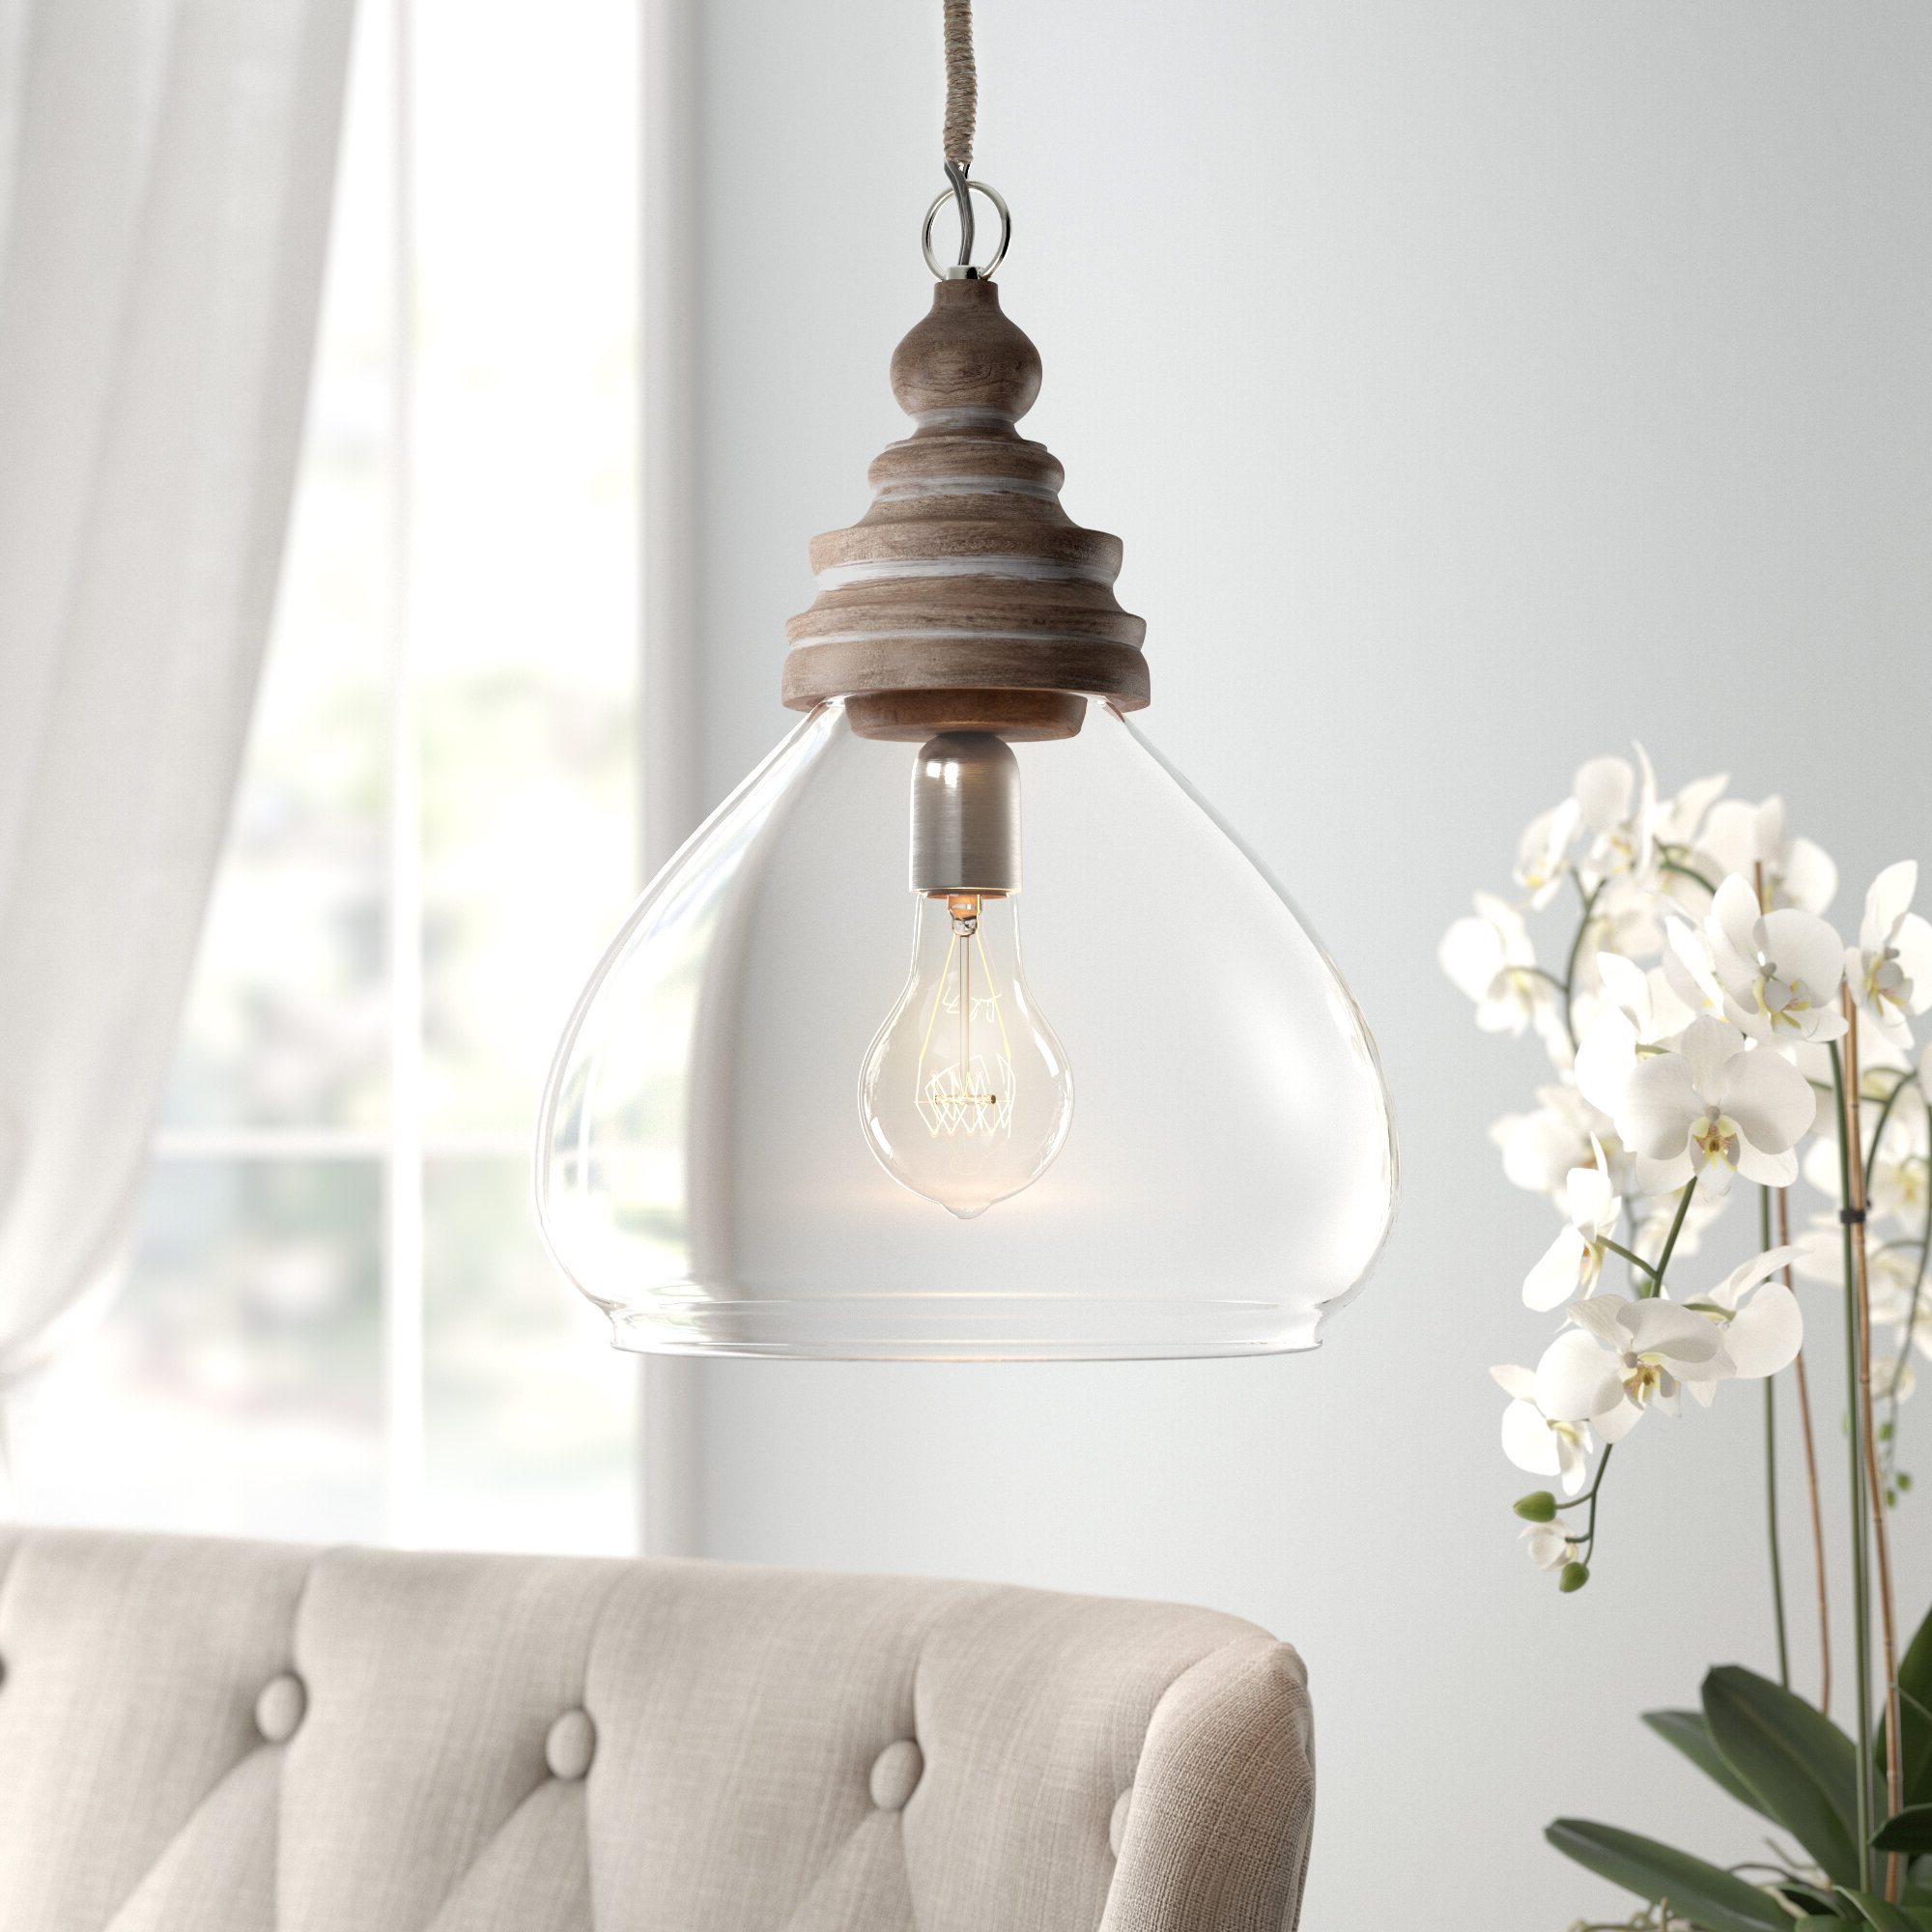 Brisa 1 Light Single Dome Pendant Throughout Famous Moyer 1 Light Single Cylinder Pendants (View 3 of 25)